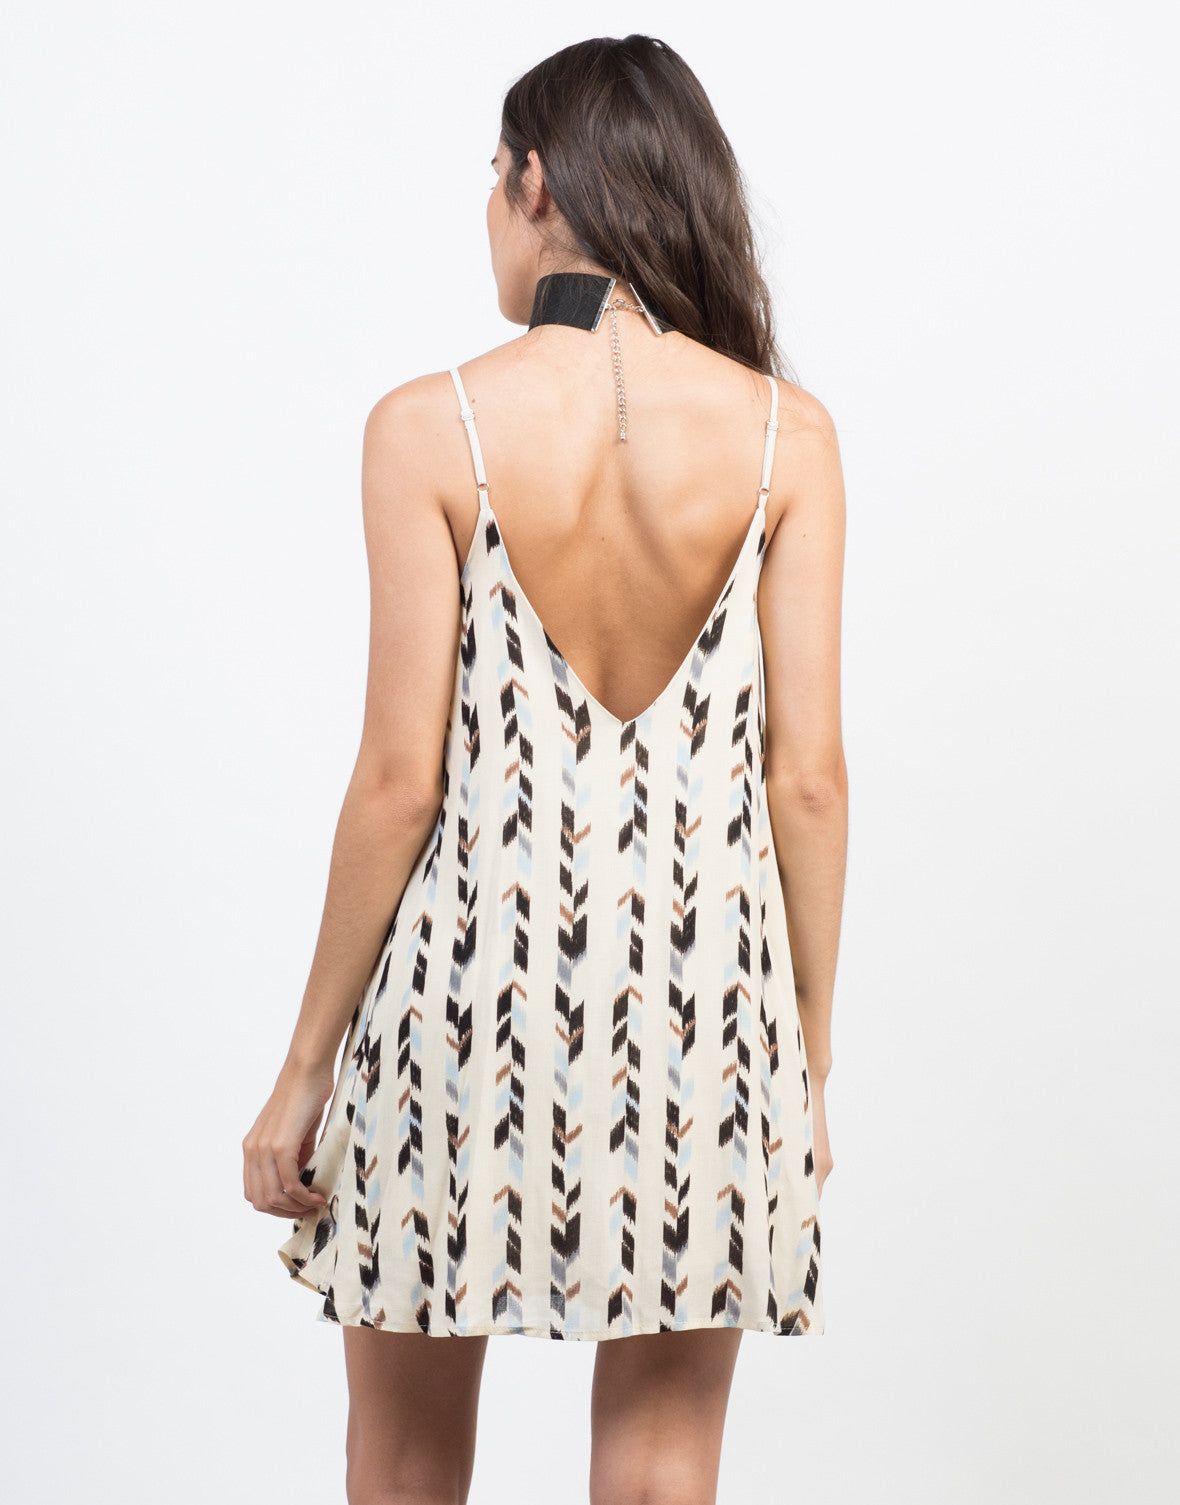 Back View of Chevron Printed Dress